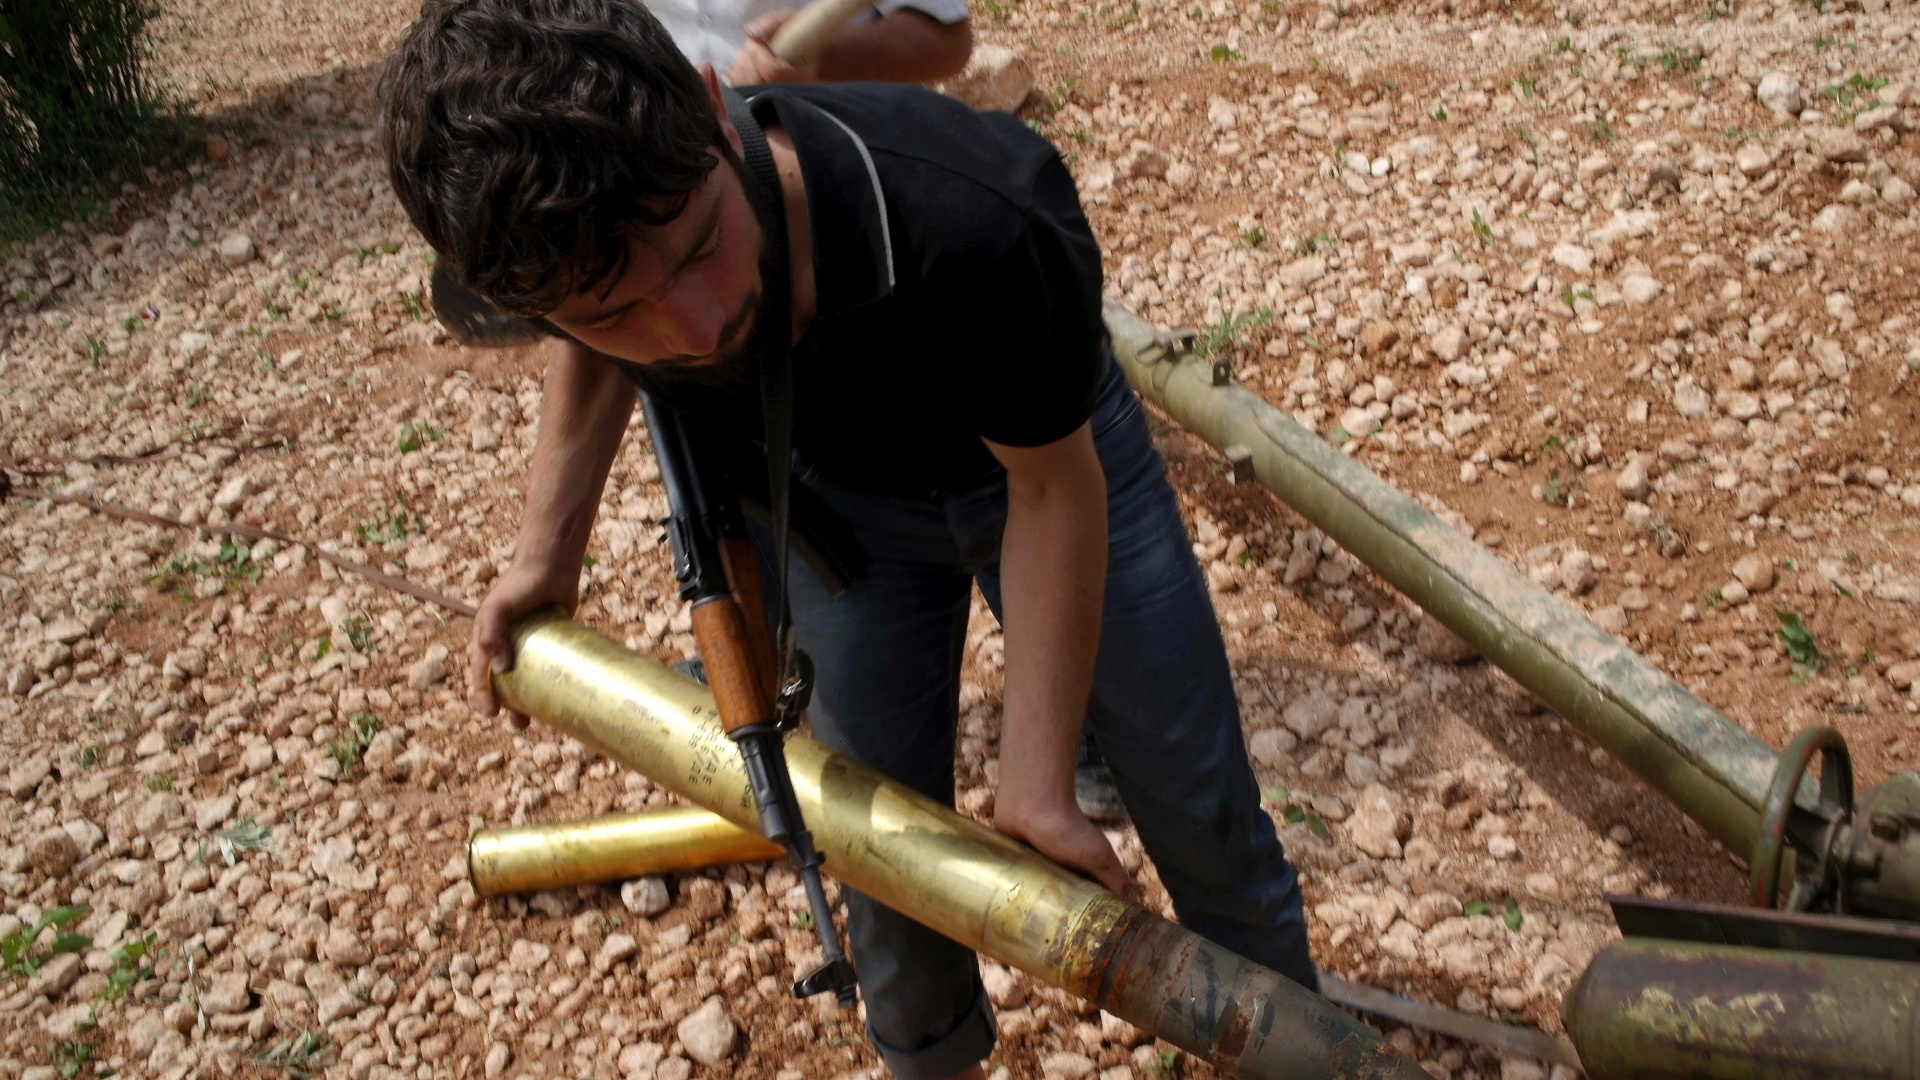 18.mai.2013 - Jovem carrega projtil de artilharia na zona rural de Aleppo, na Sria